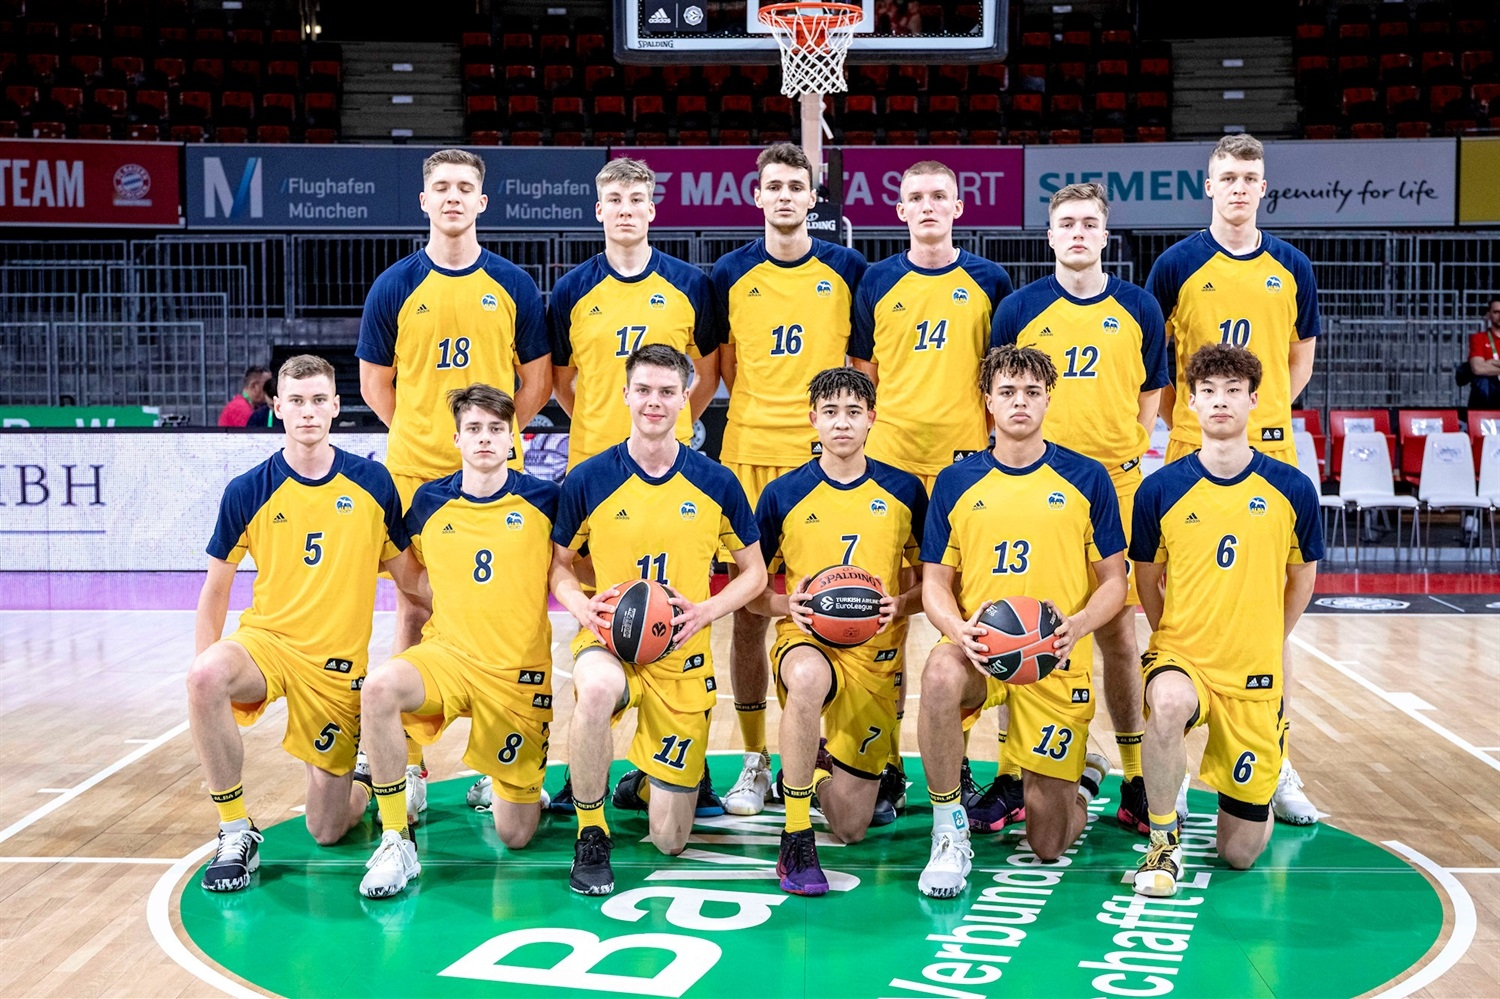 U18 ALBA Berlin - ANGT Munich 2020 (photo Steffen Eirich - Bayern) - JT19